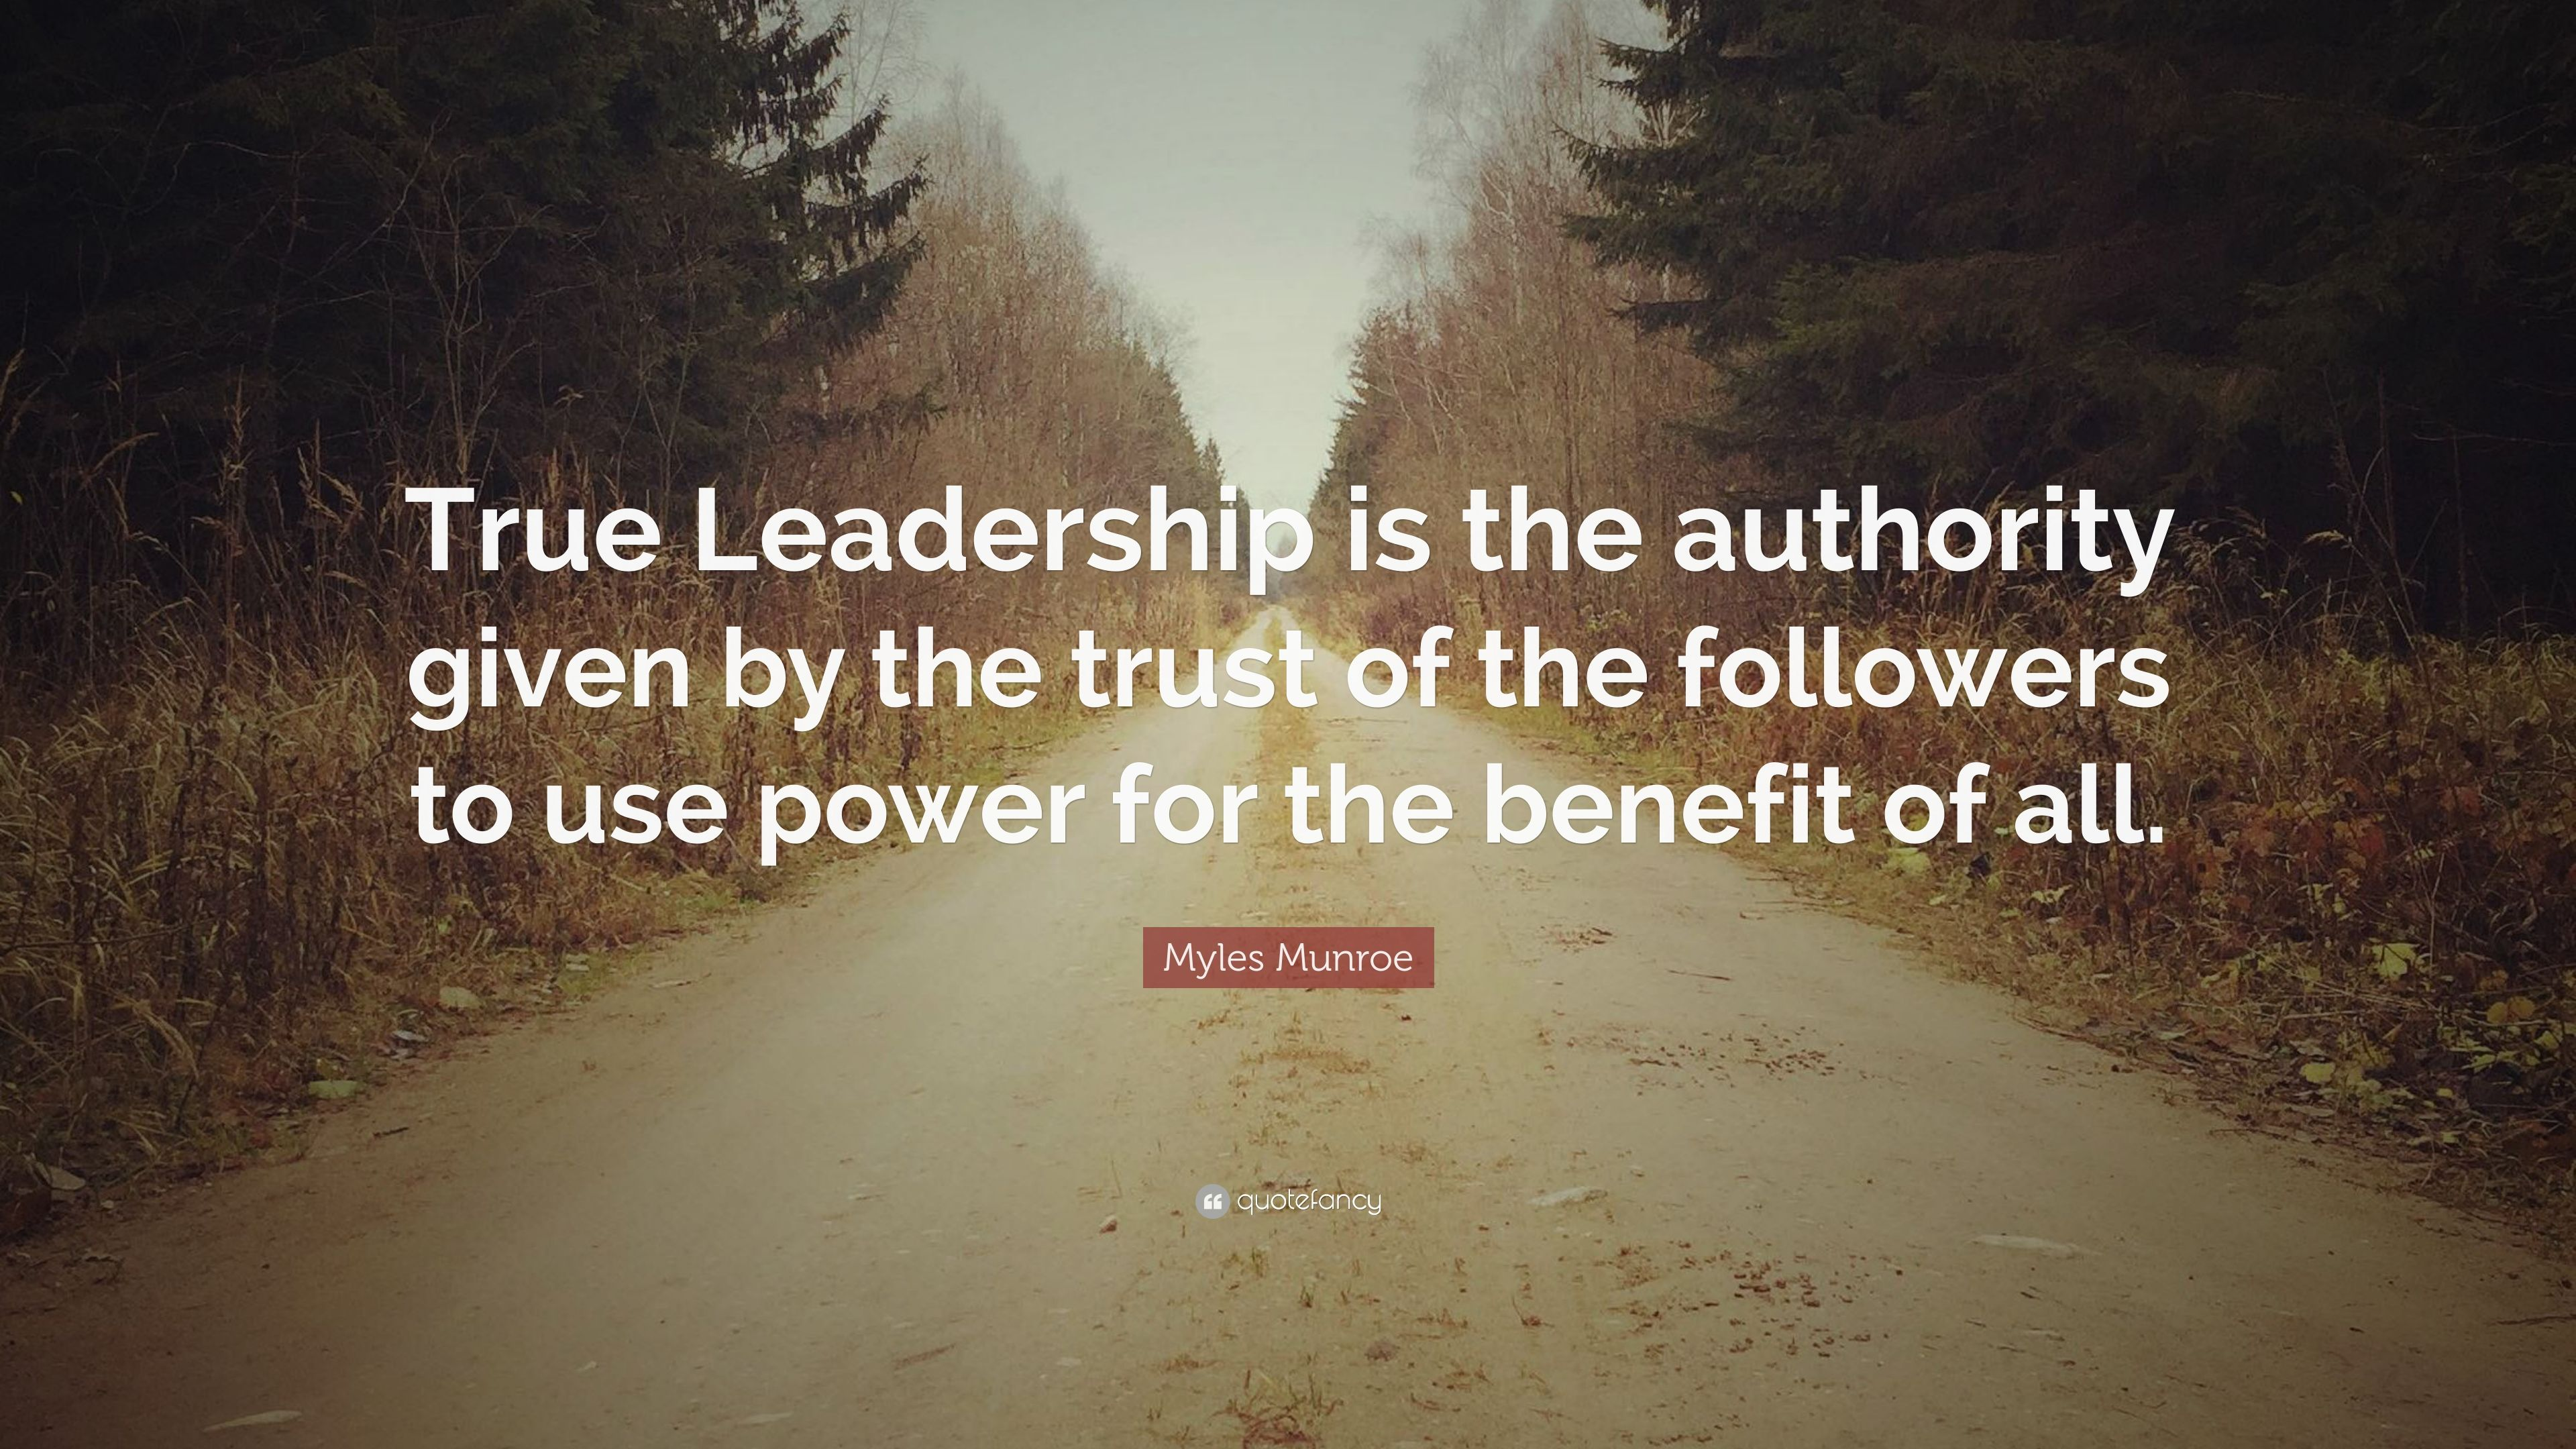 Myles Munroe Quote: True Leadership is the authority